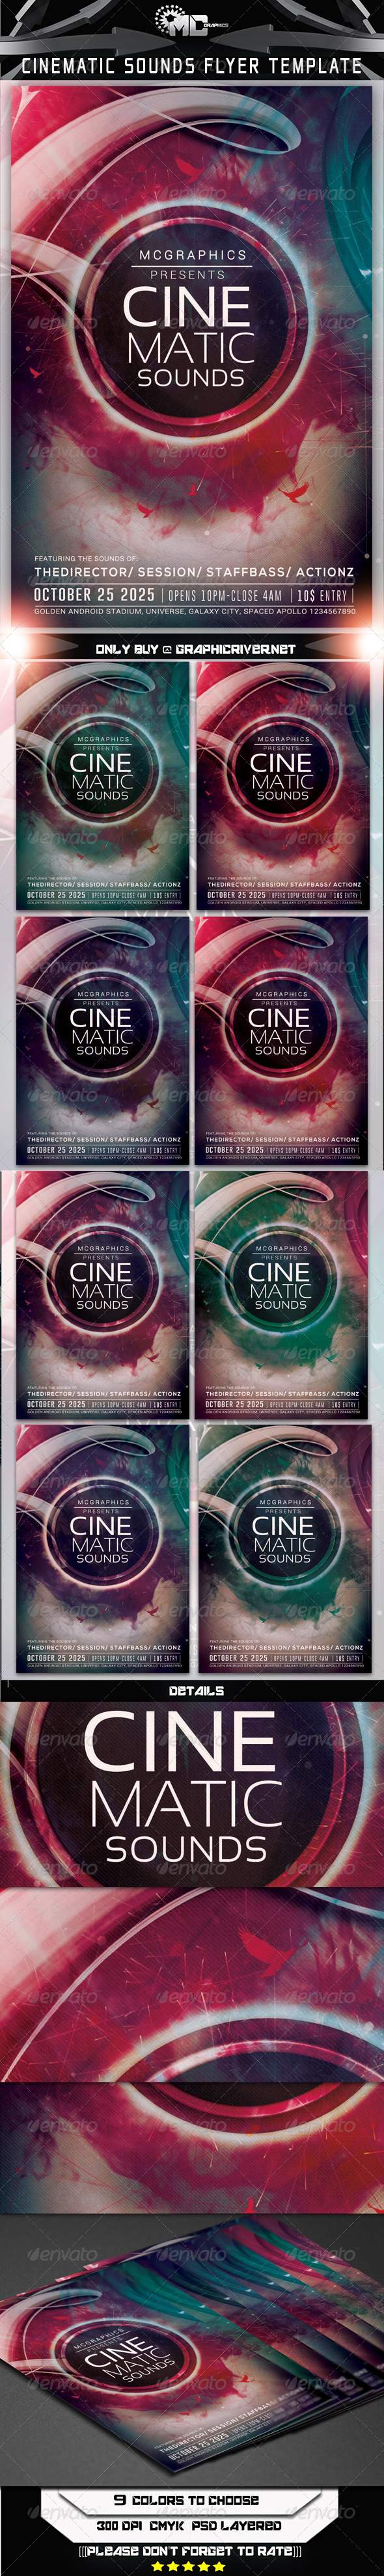 Cinematic Sounds Flyer Template - Flyers Print Templates